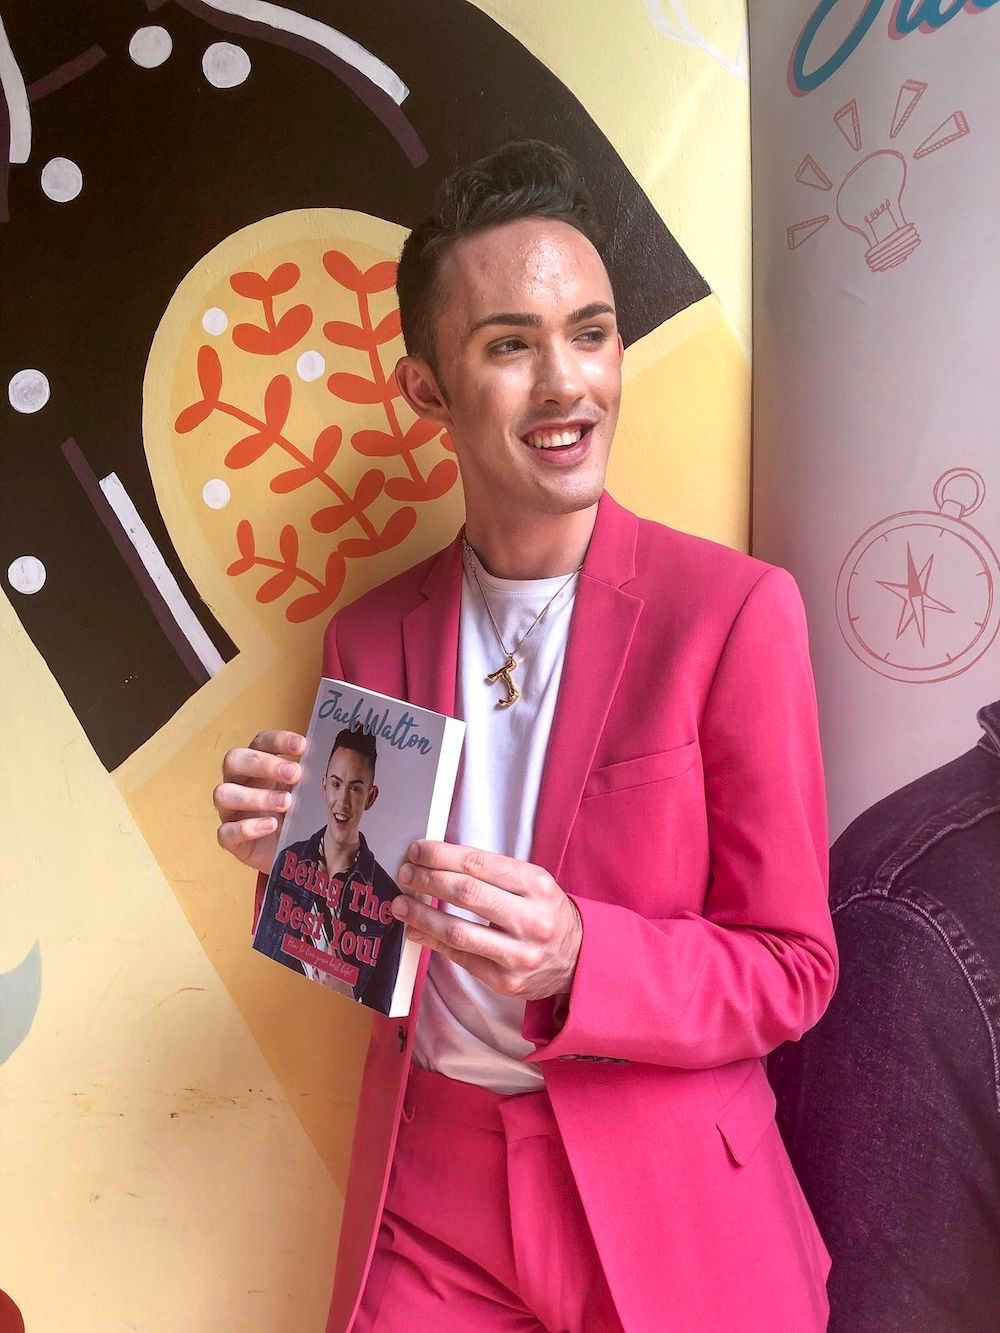 Jack holding his book titled 'Being the Best You'